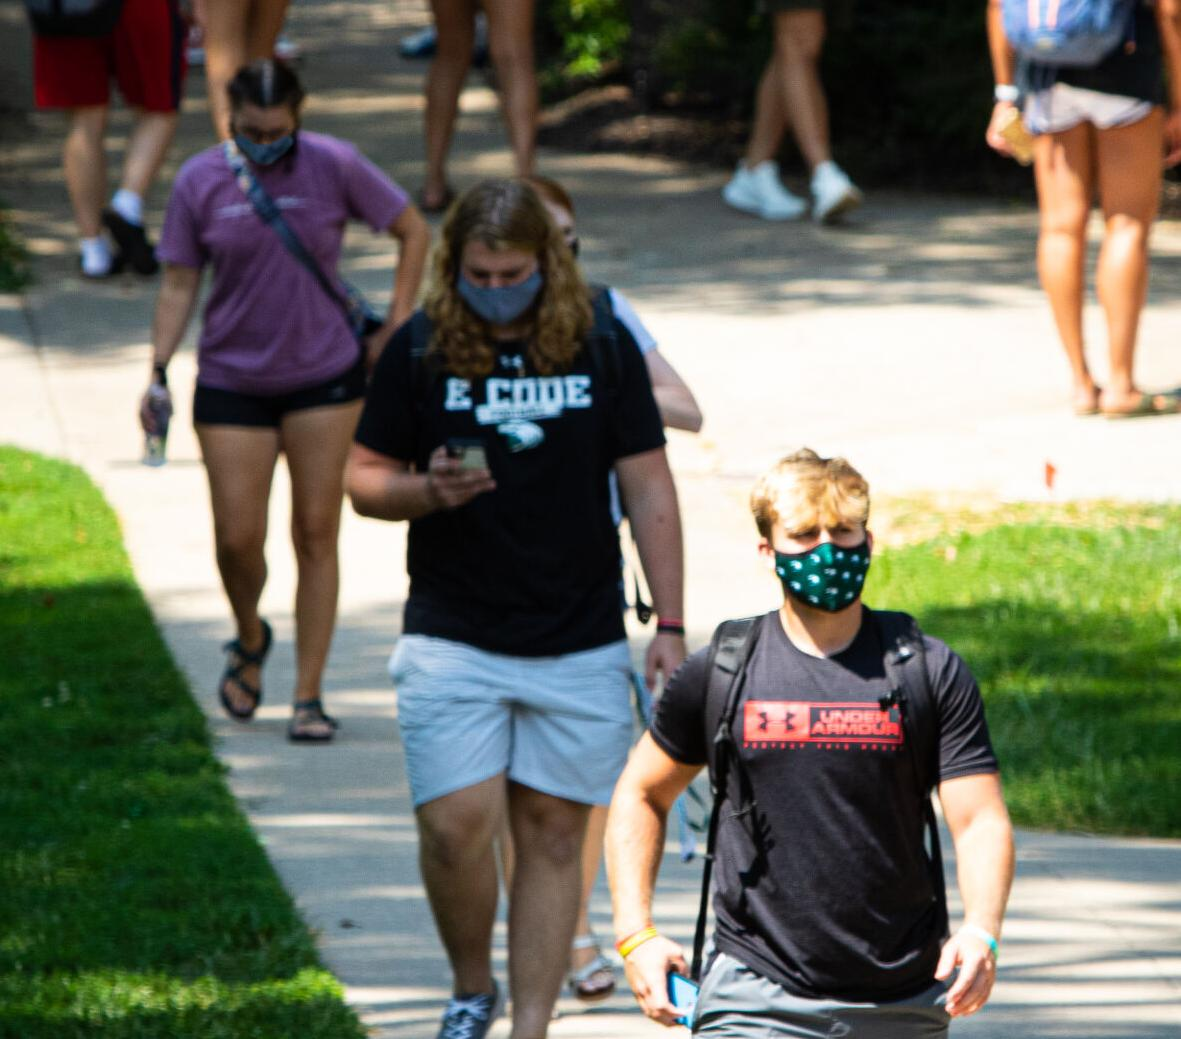 CMU students on their way to class. Photo provided by Central Methodist University